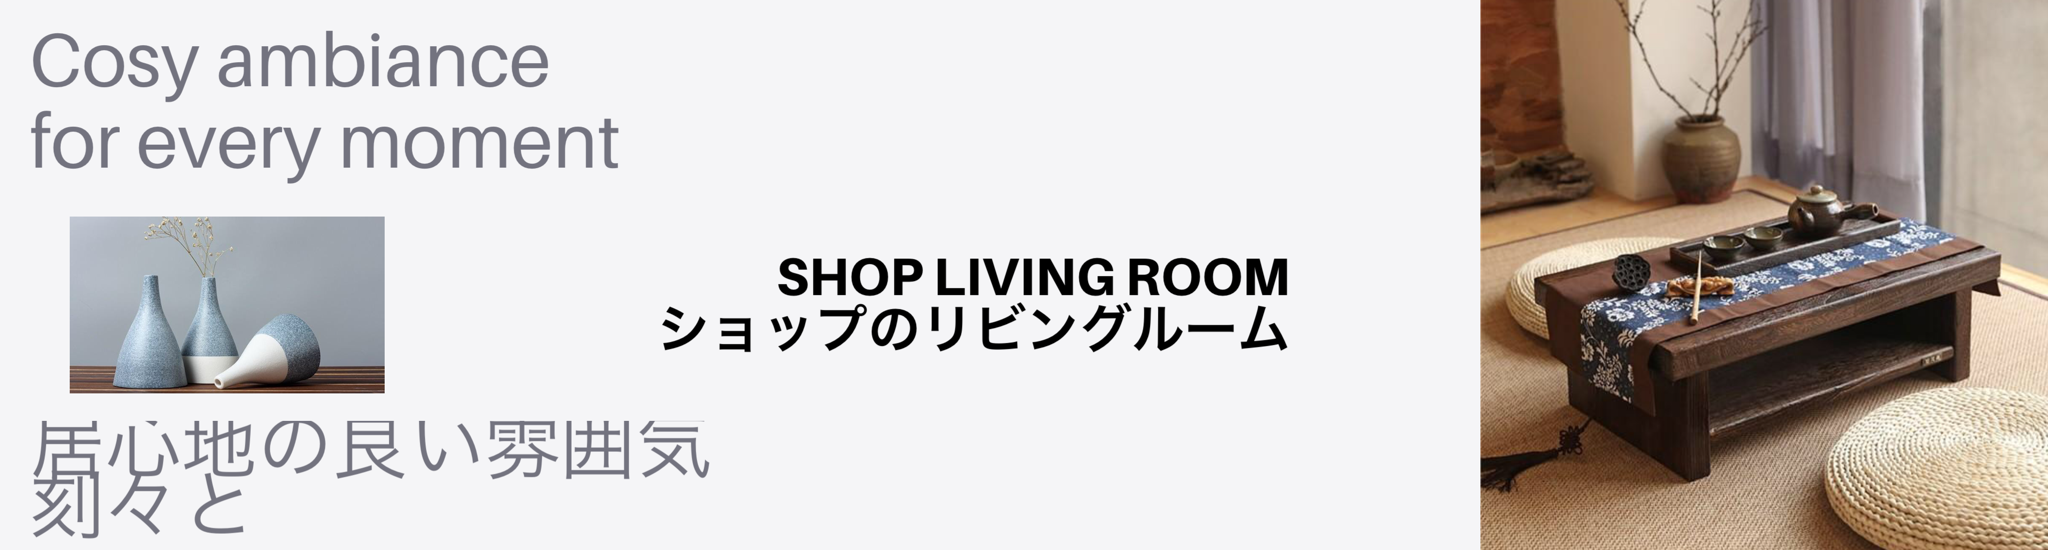 miTeigi Living Room Collection | Japanese Apparel and Home Decor Retail Shopping